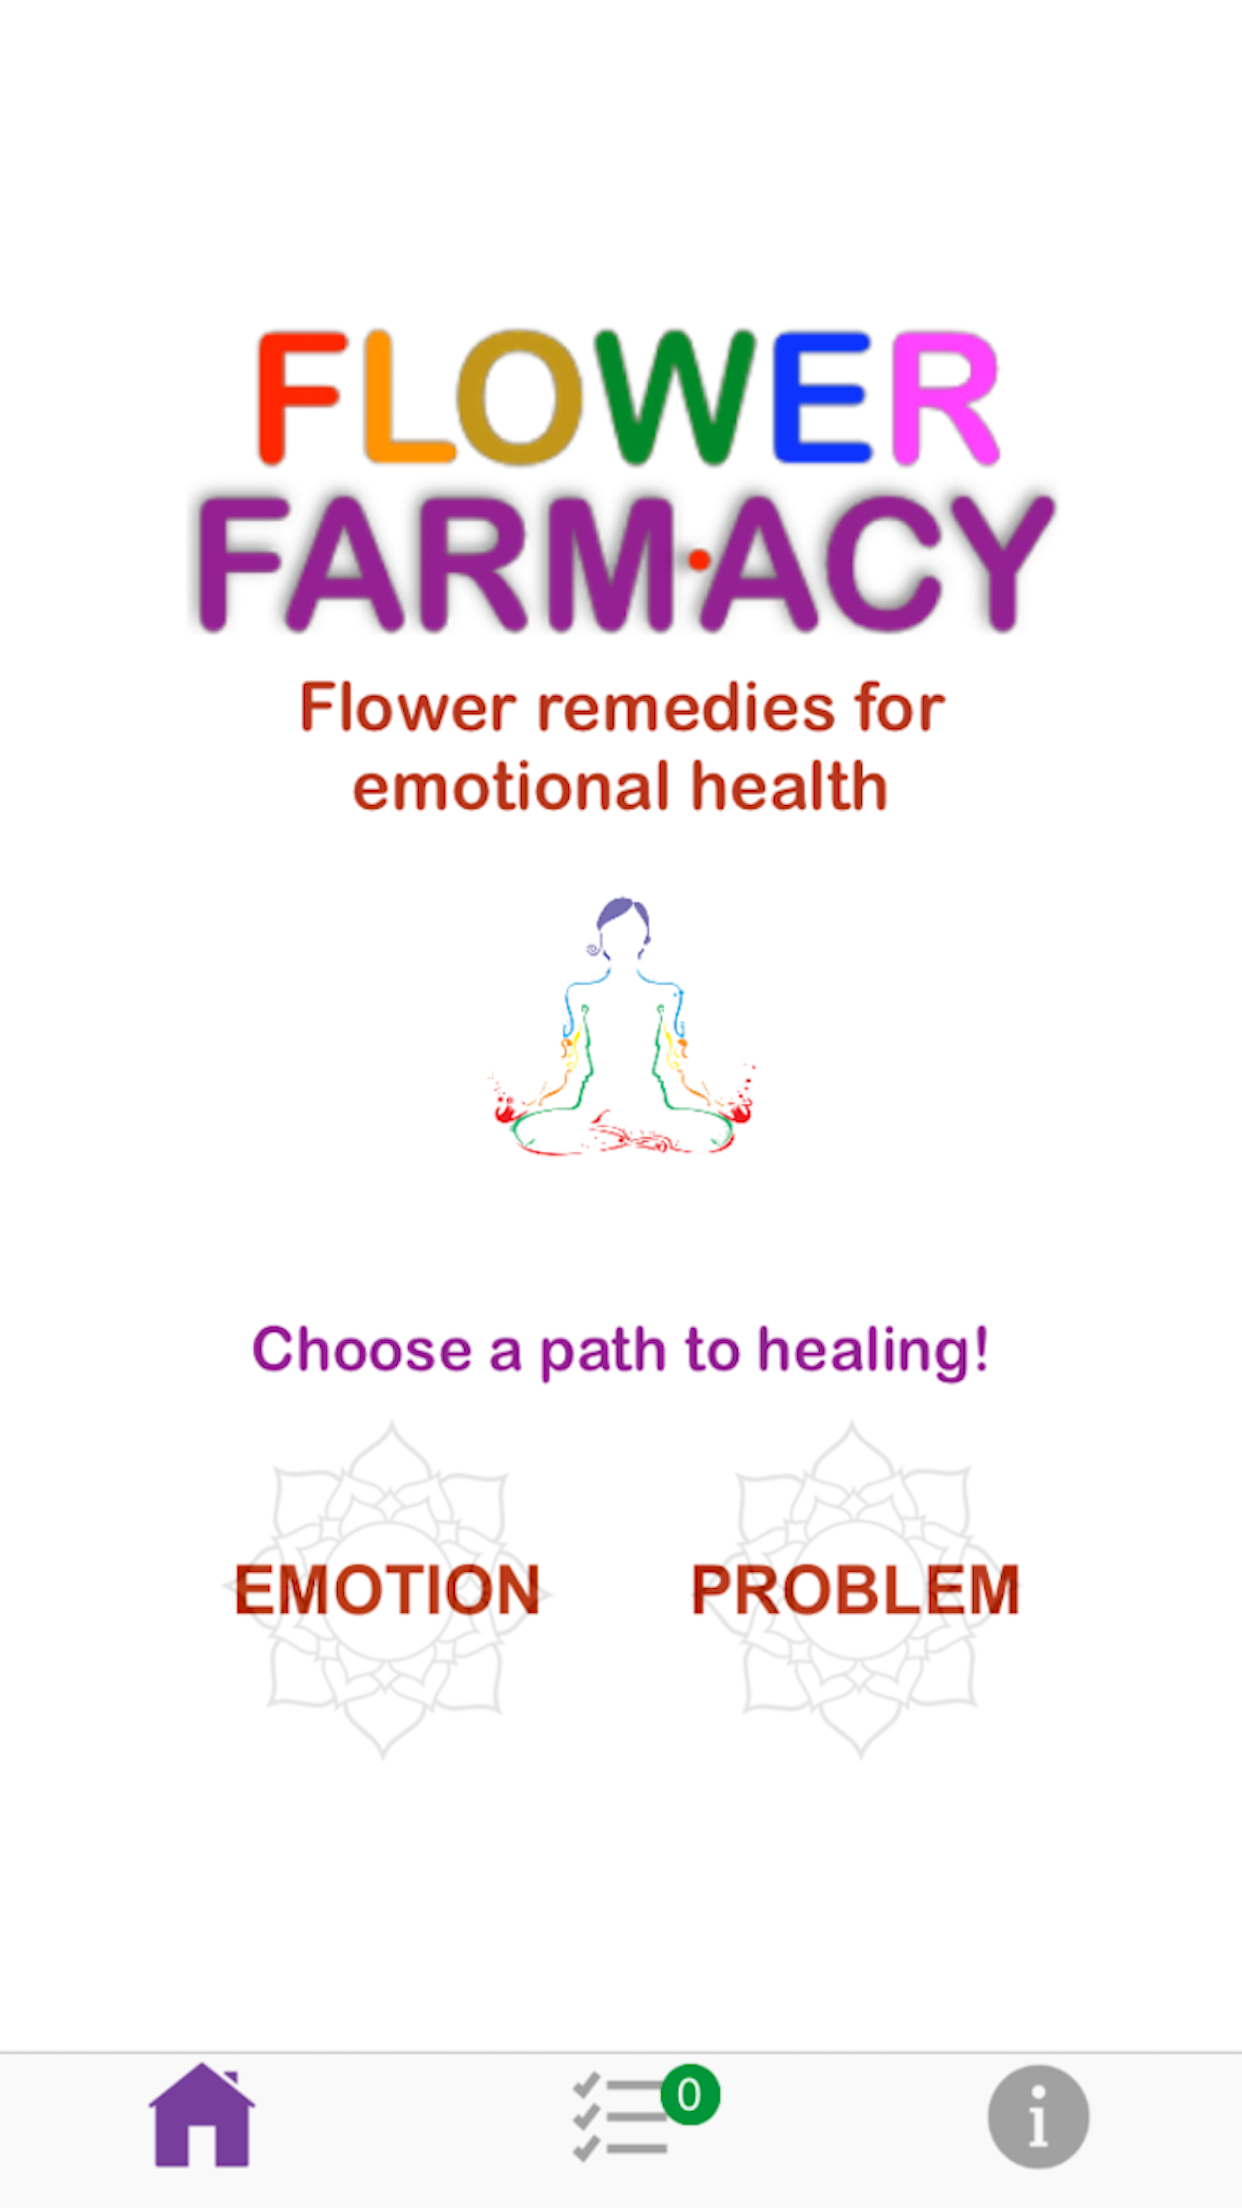 Flower Farmacy: Home